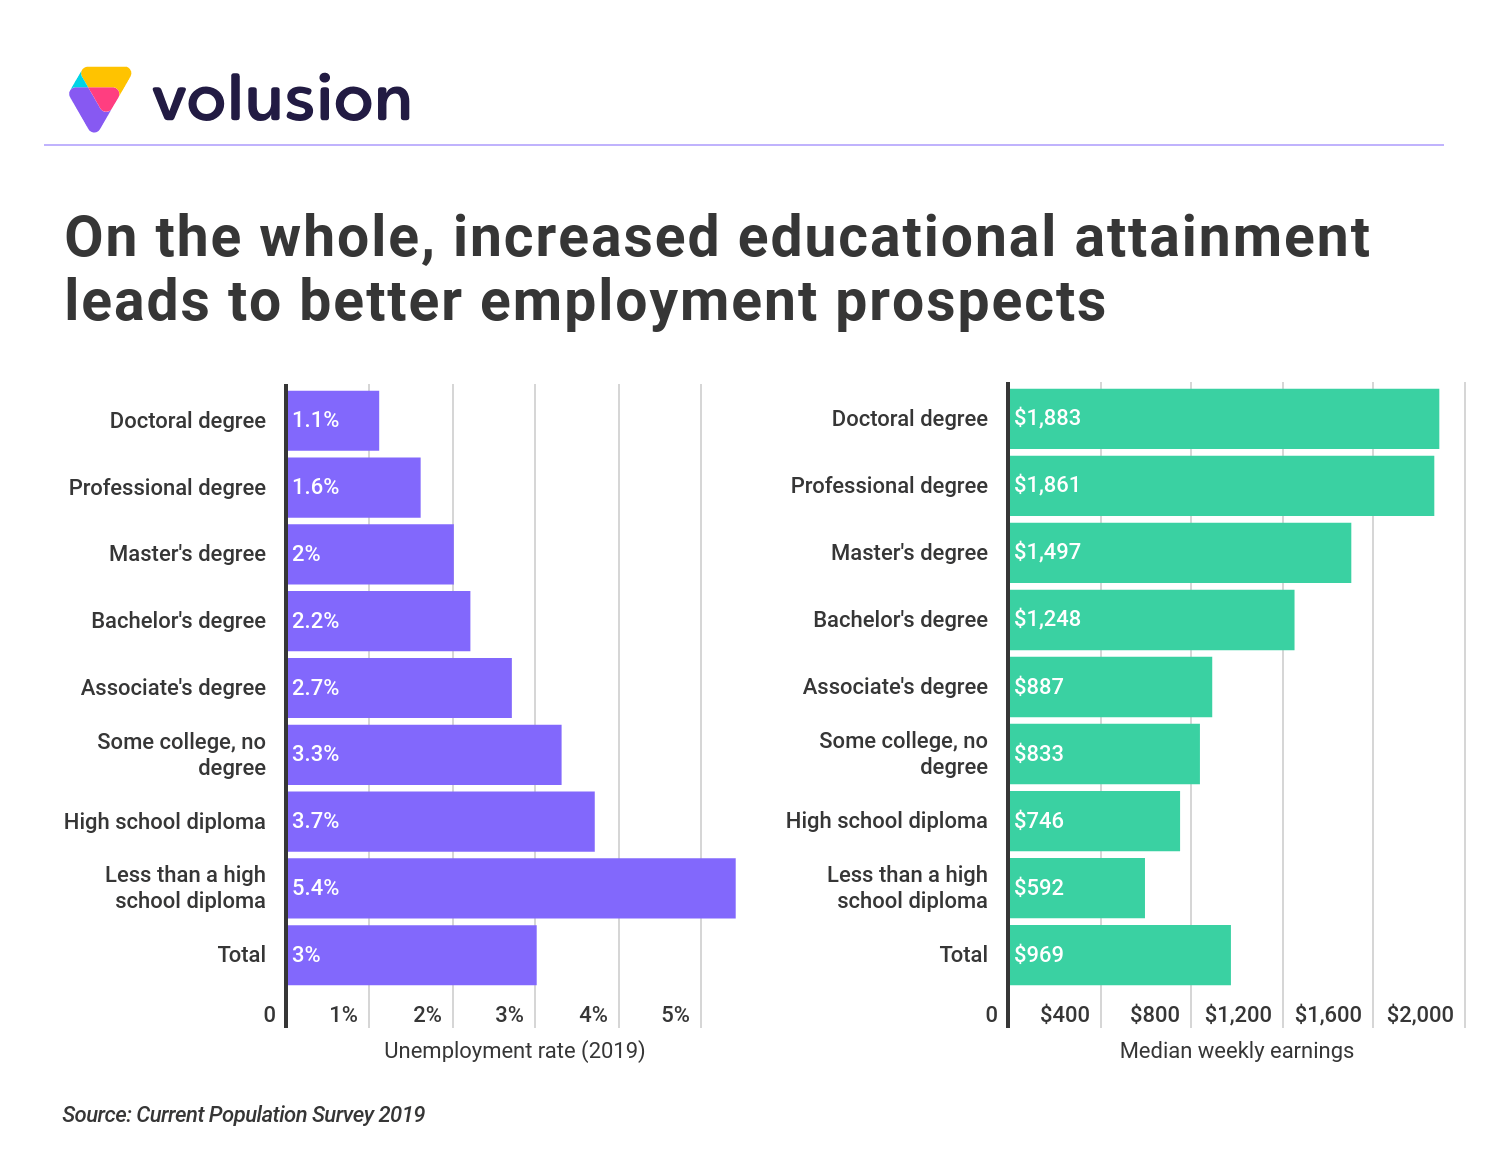 Chart showing that on the whole, increased educational attainment leads to better employment prospects.